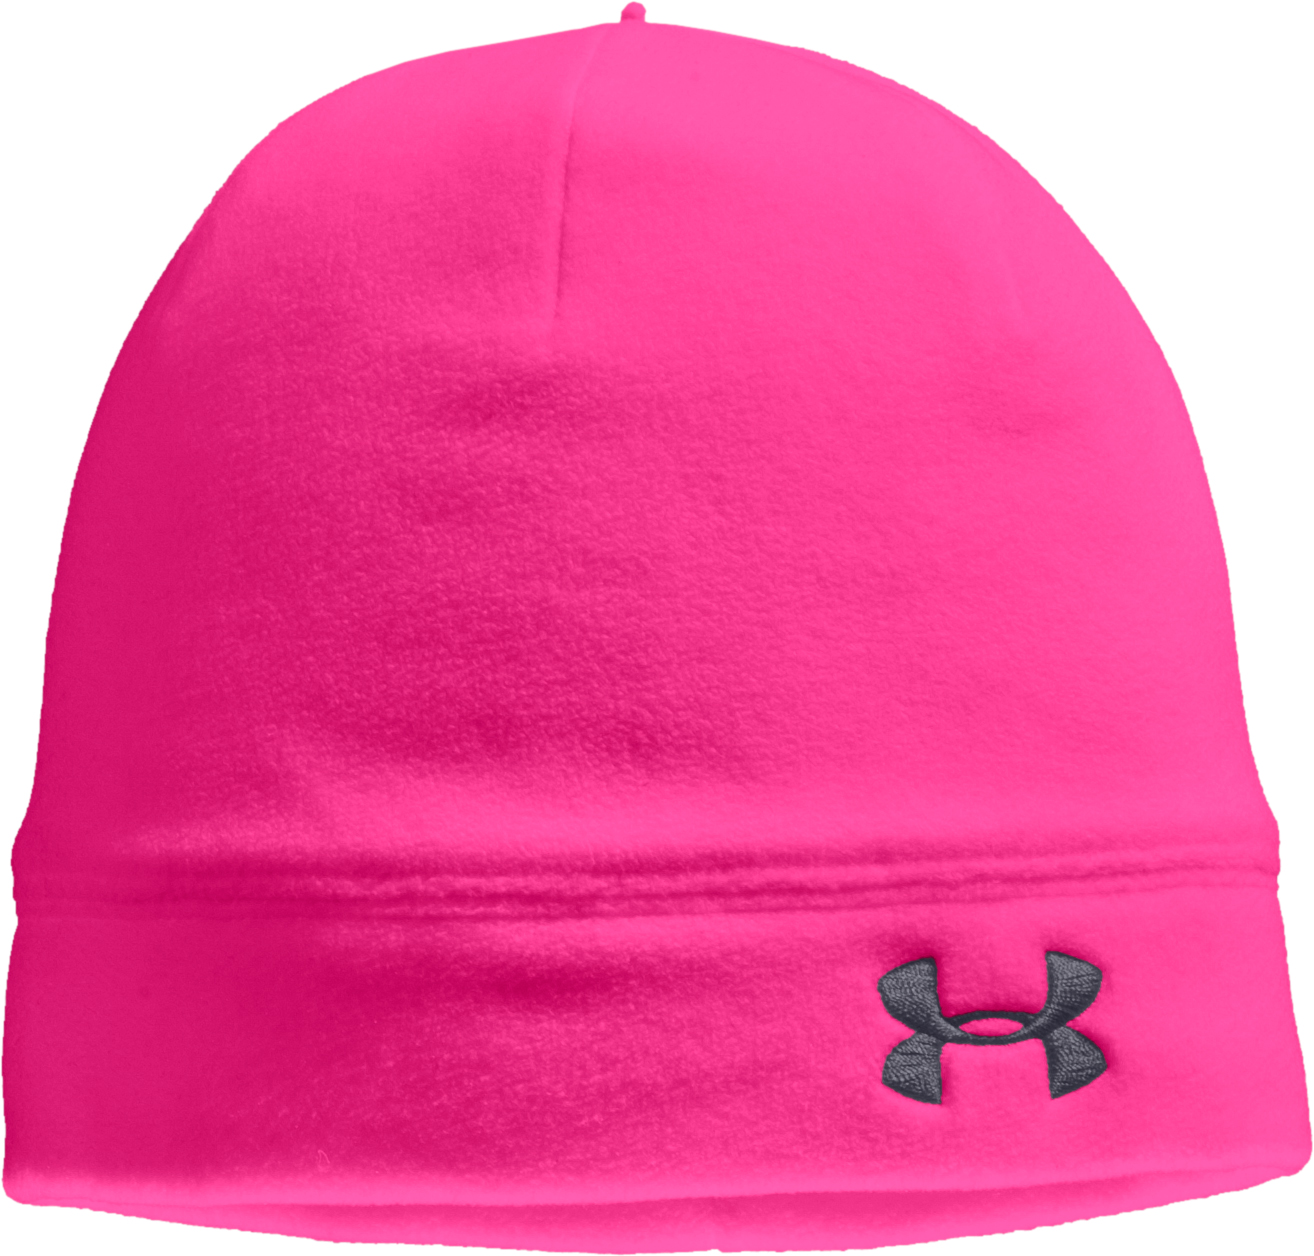 5a274c8be56 ... germany under armour women 39 s no breaks coldgear infrared beanie  black pretty cheap d2d96 9beaa